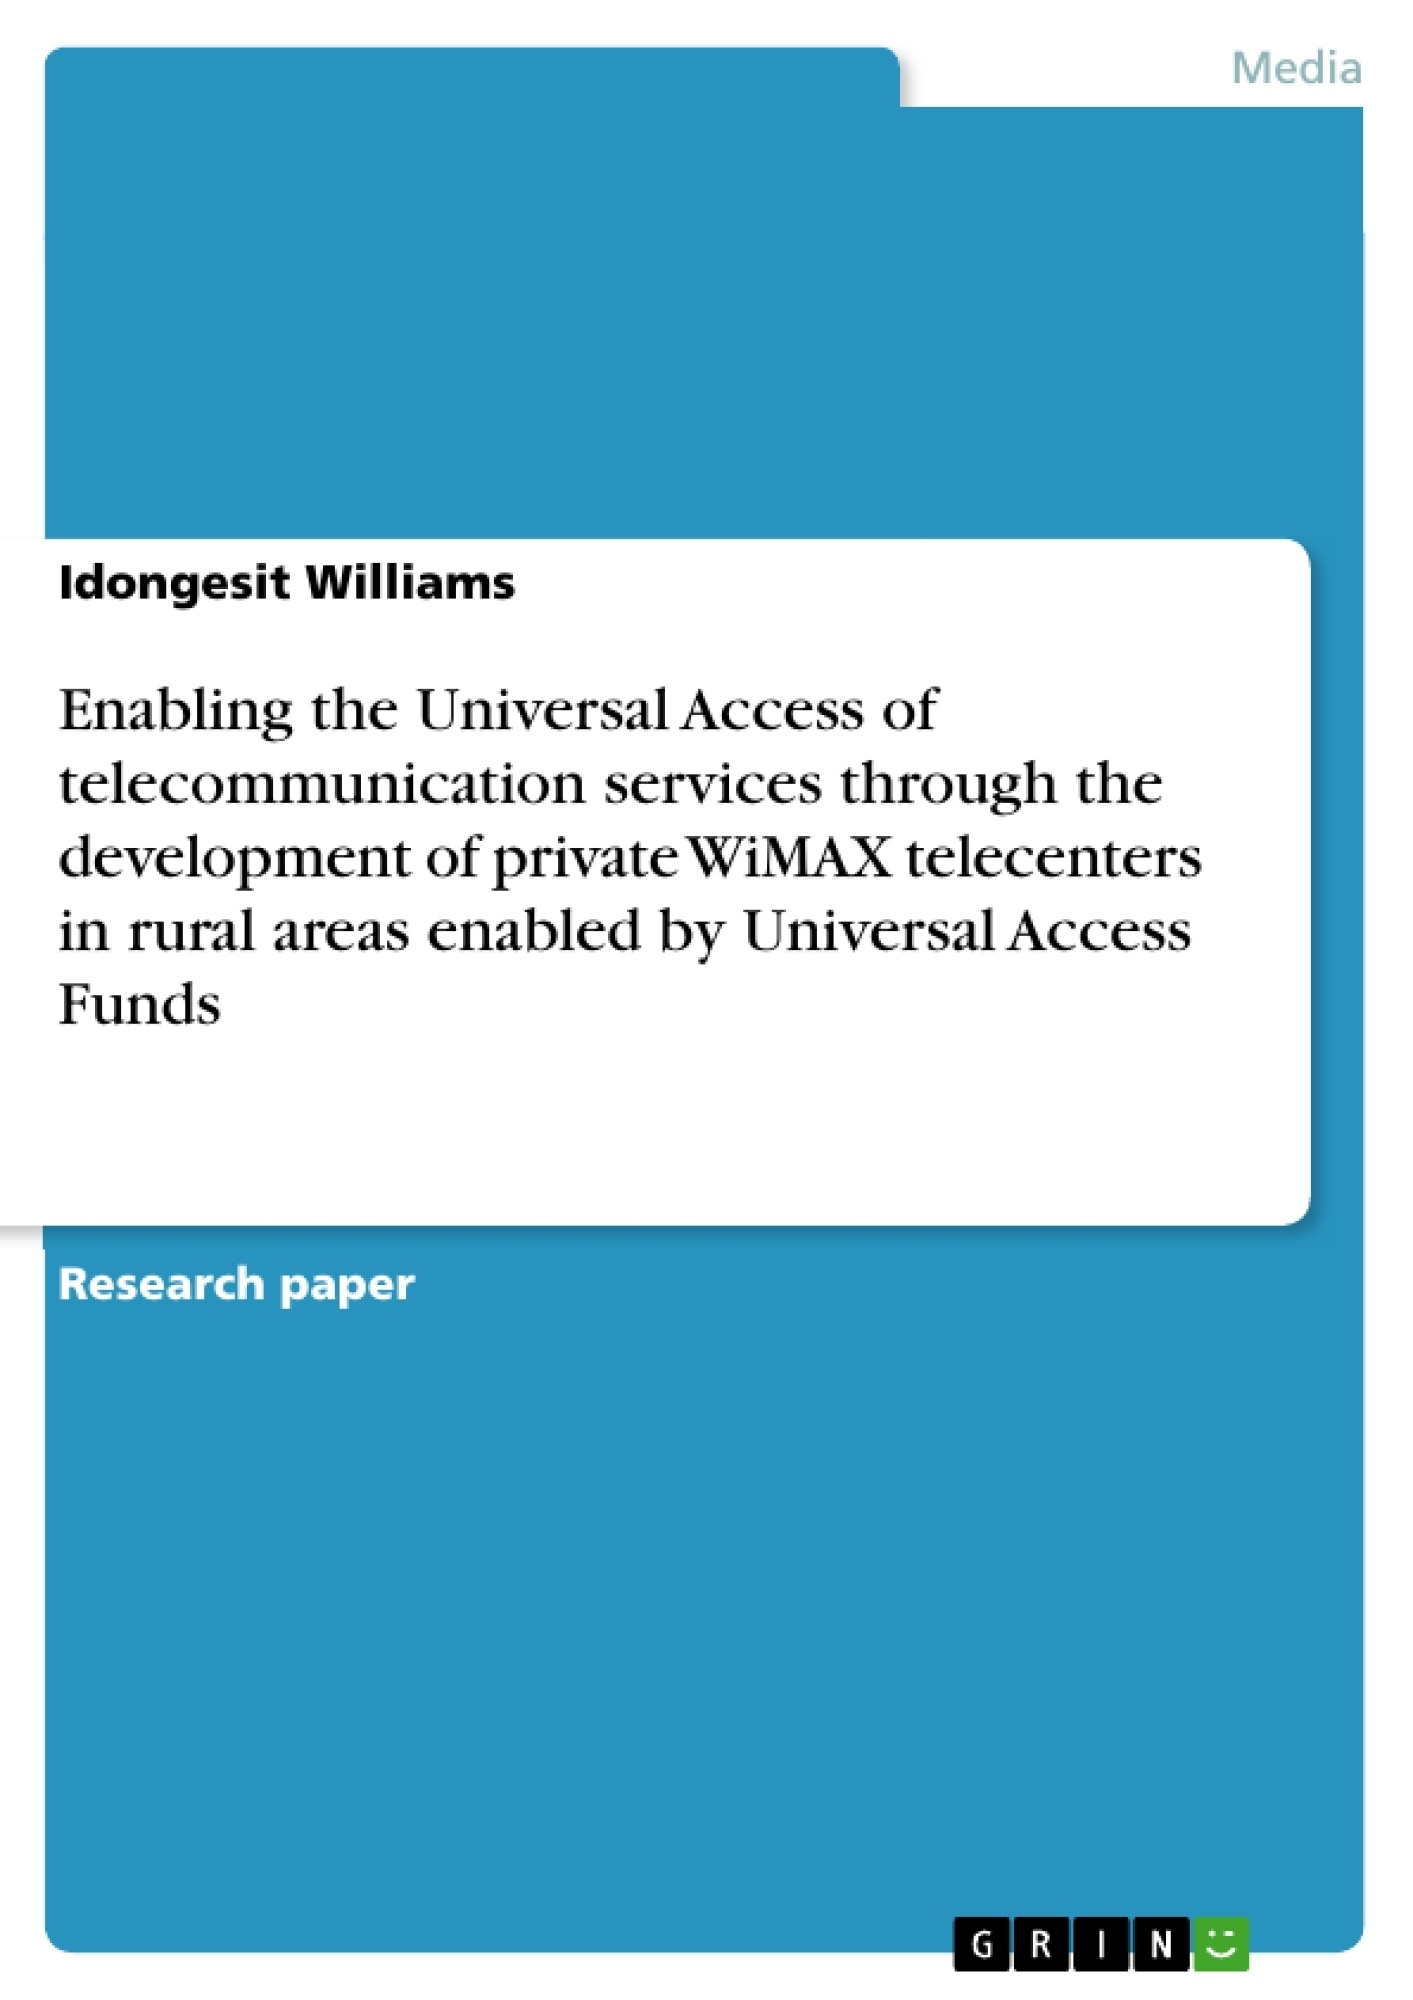 bachelor thesis telecommunication